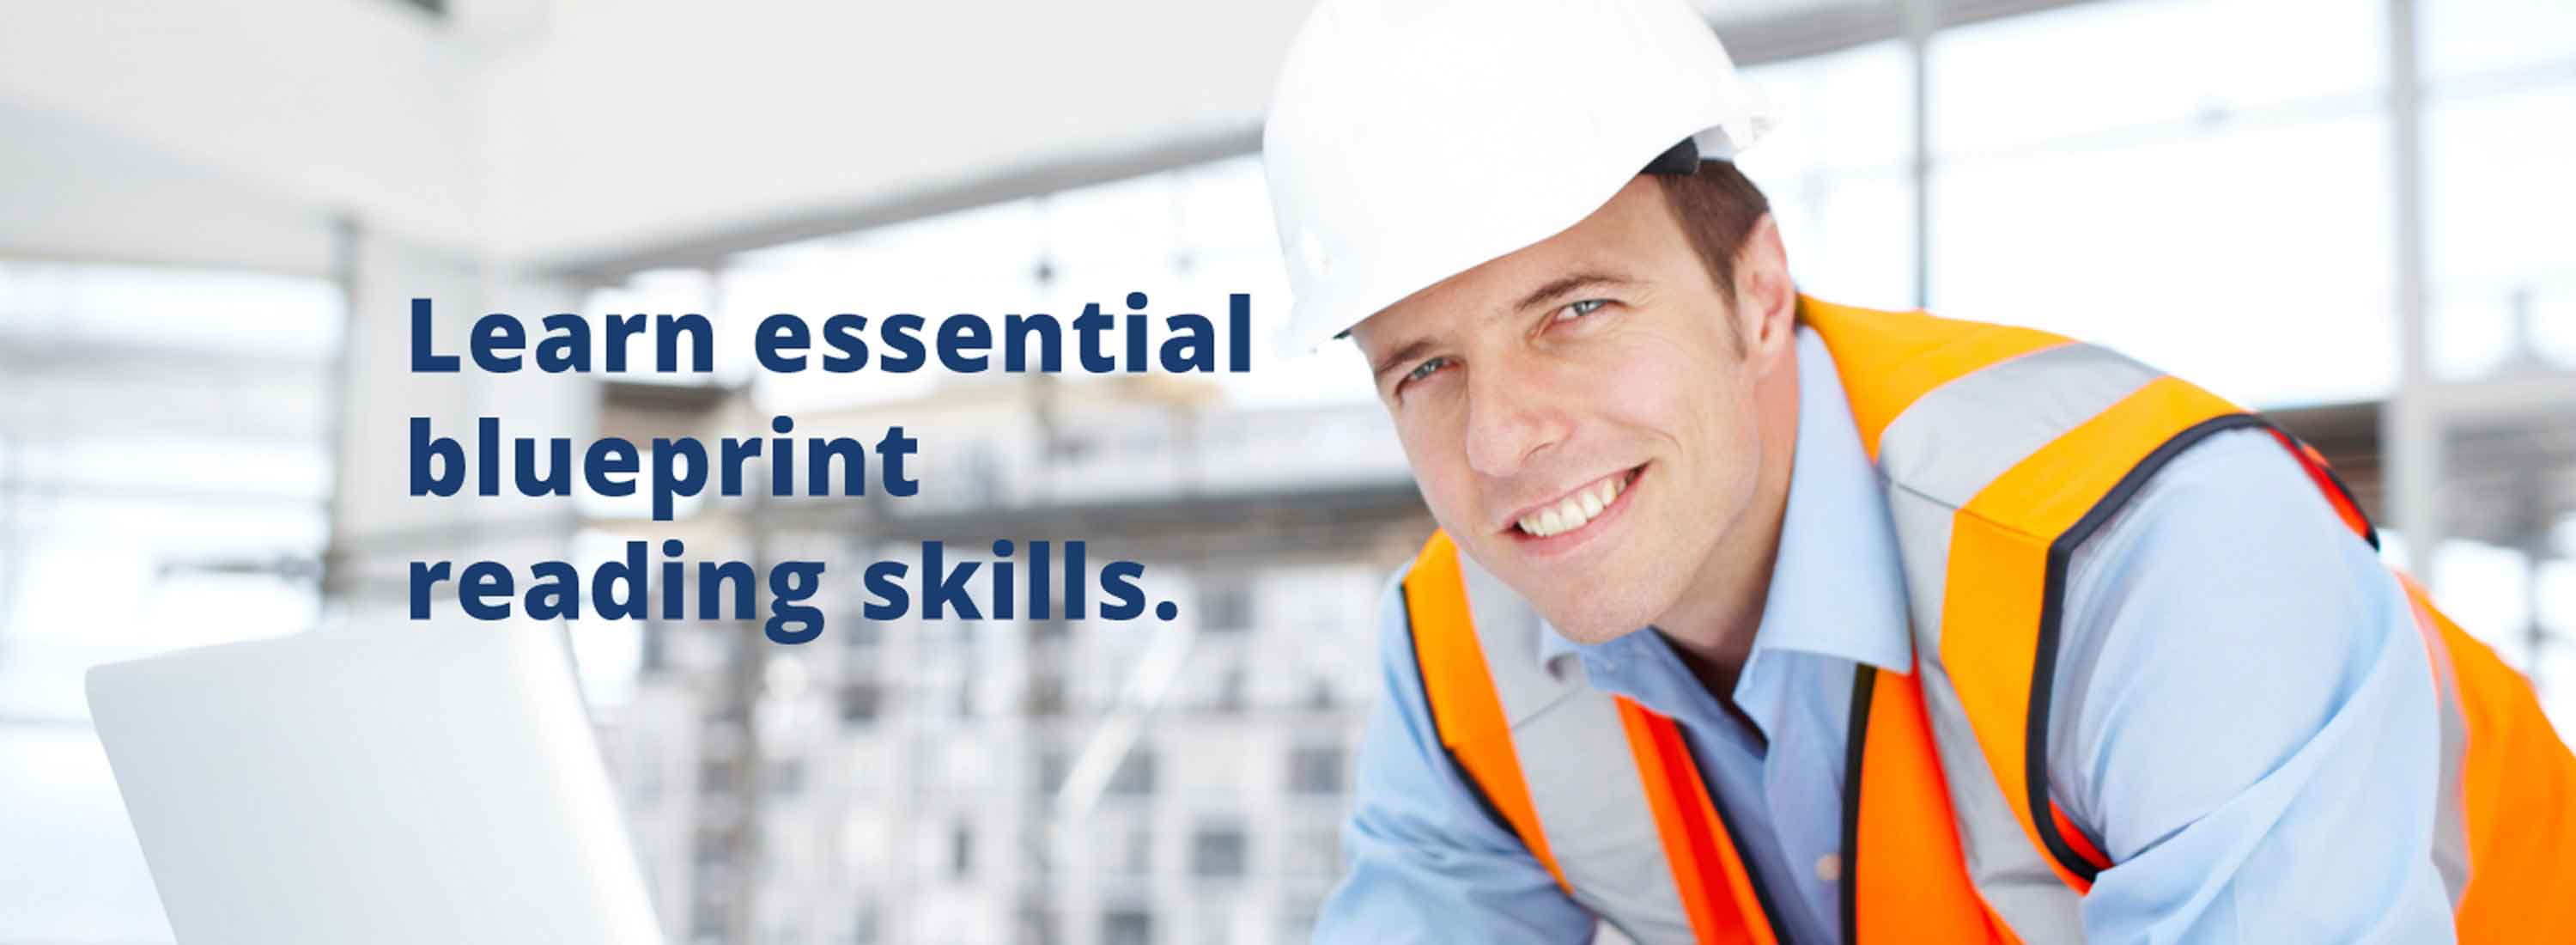 construction management coursework This program is dedicated to teaching sustainable construction methods that address the building educational experience in construction management coursework.